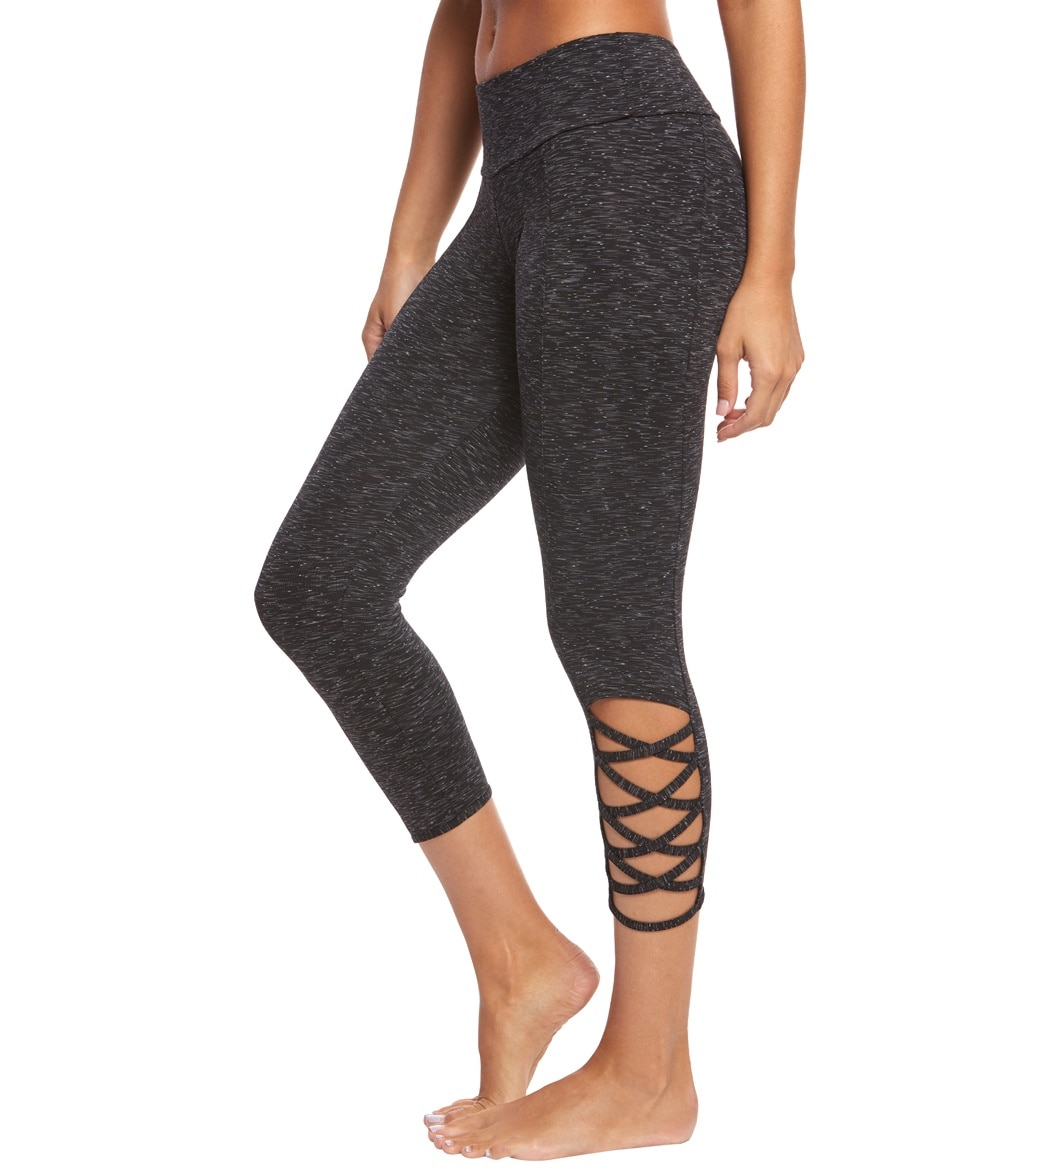 Onzie Weave Yoga Capris at YogaOutlet.com - Free Shipping